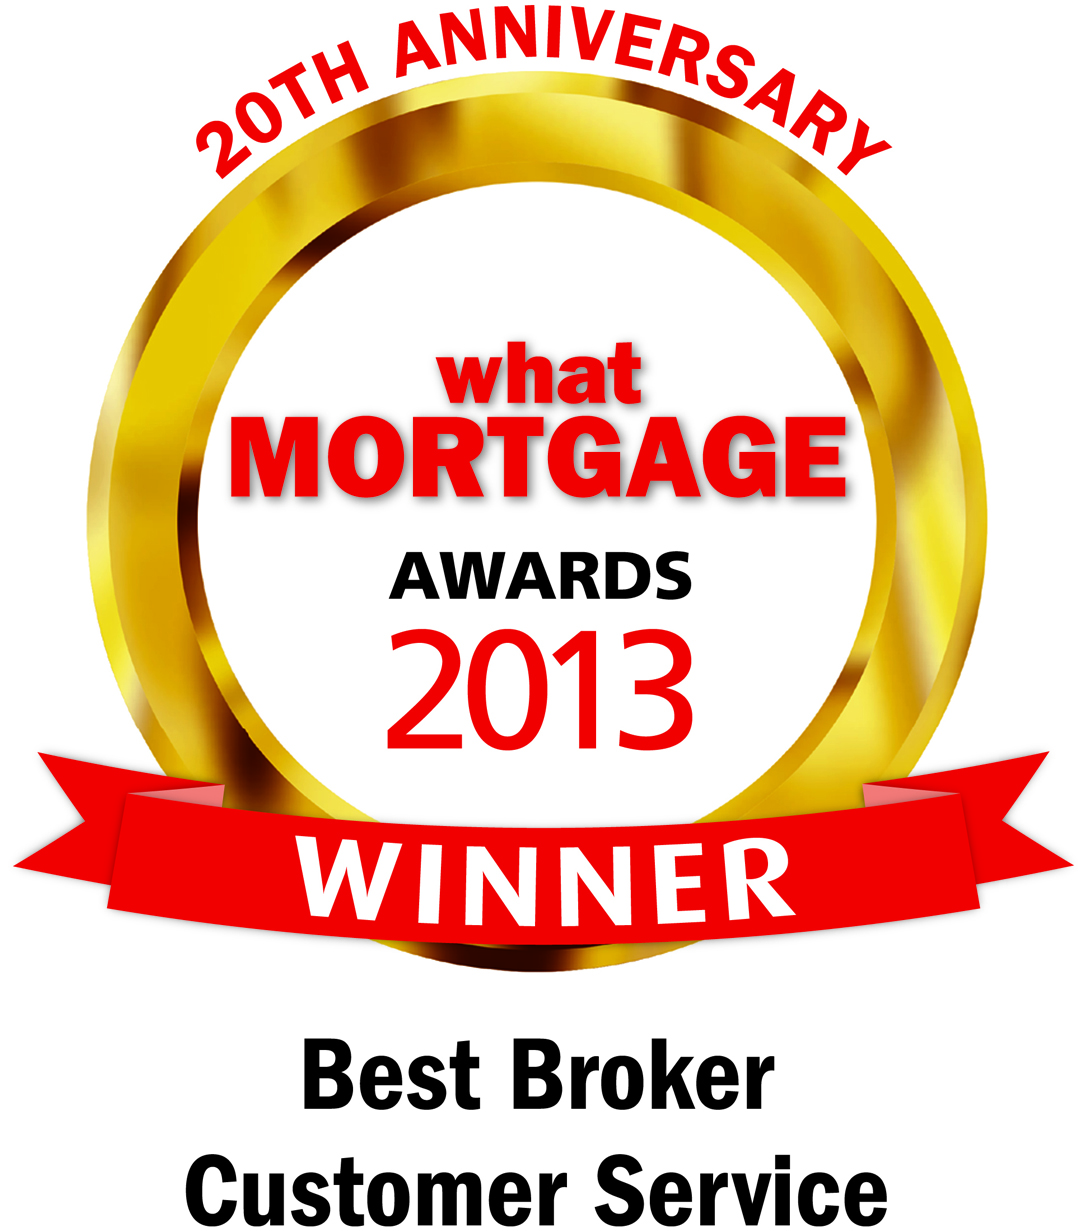 Best Broker Customer Service - What Mortgage Awards 2013